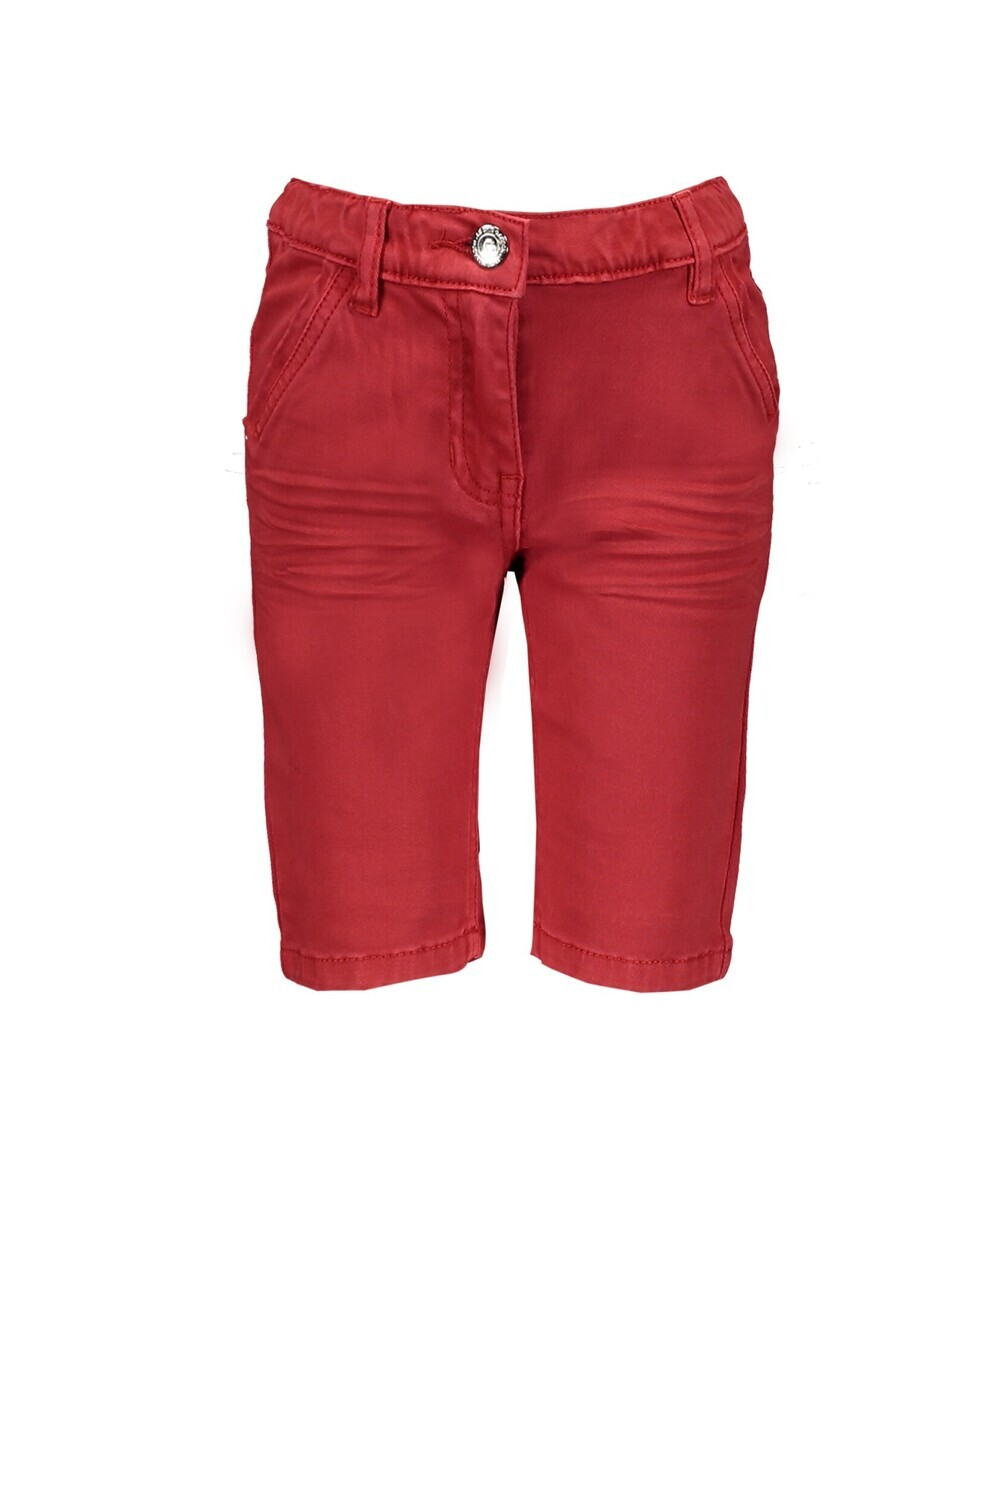 Le chic Jeans Short Red